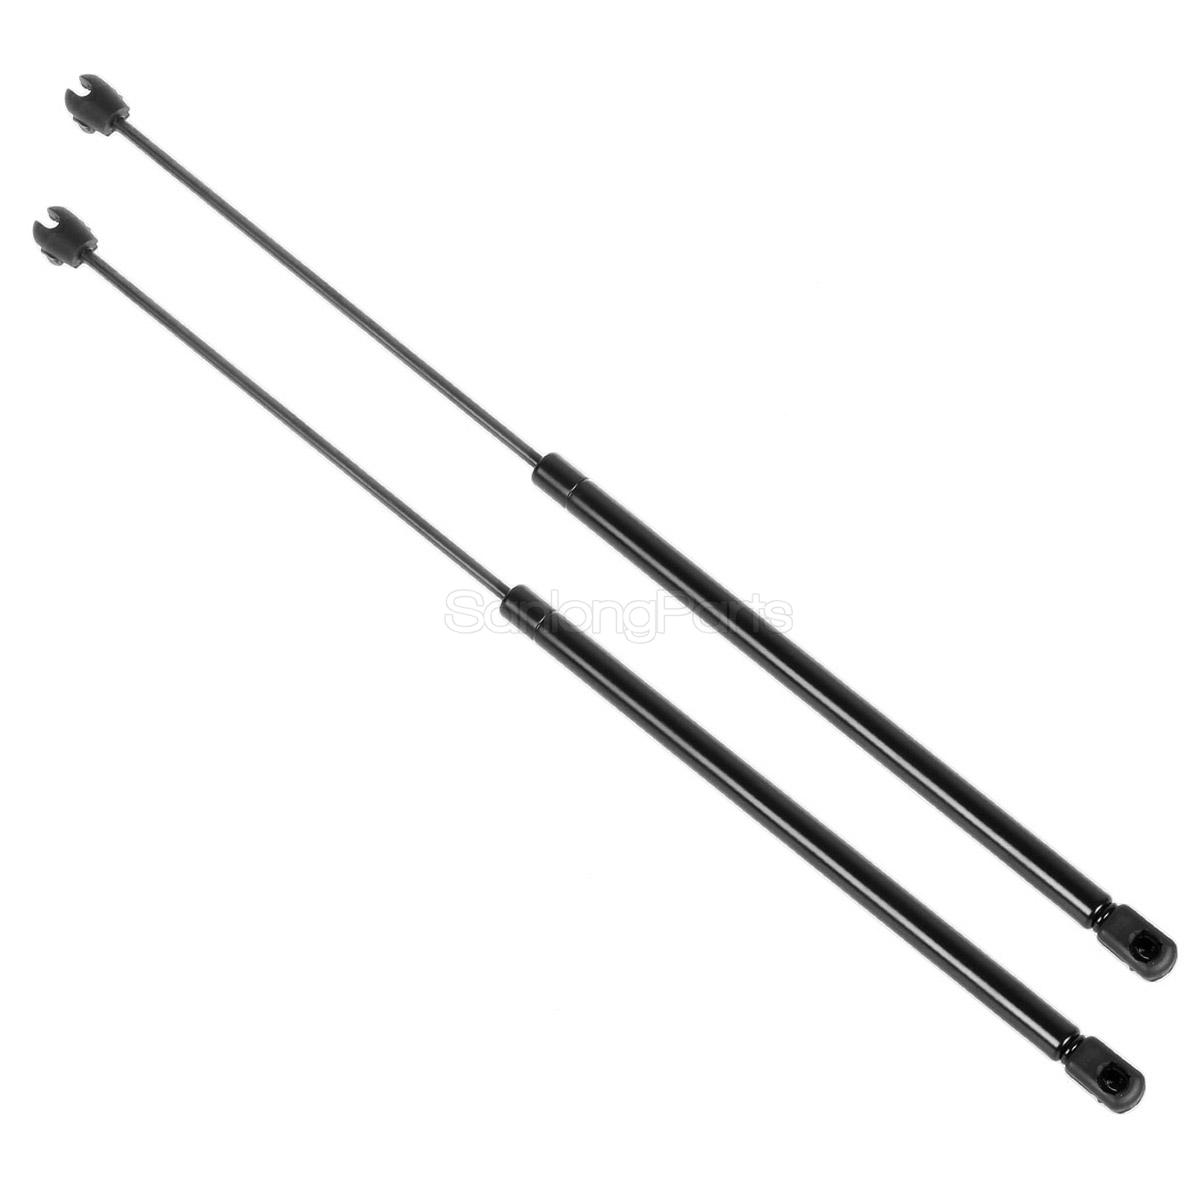 2x Pm Front Hood Gas Charged Lift Support For